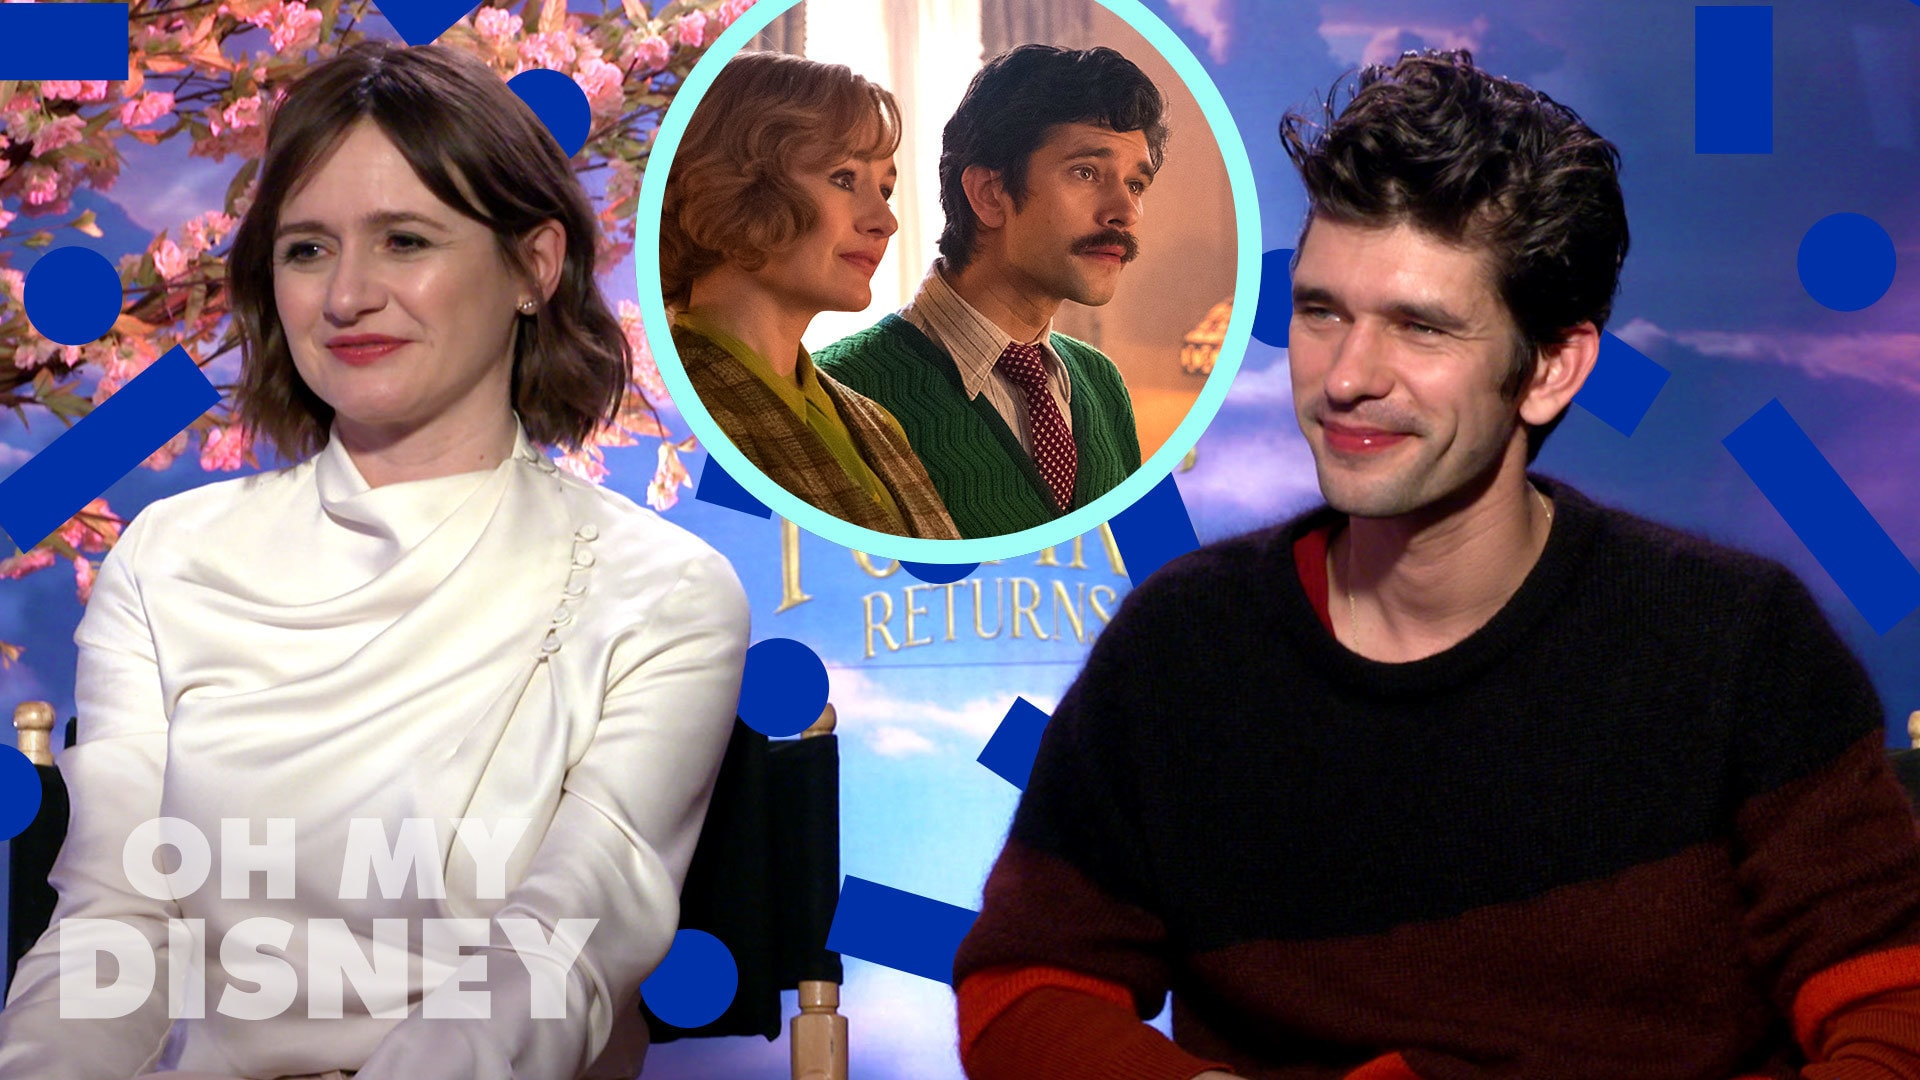 Rob Marshall, Ben Whishaw, and Emily Mortimer Talk Mary Poppins Returns | Oh My Disney